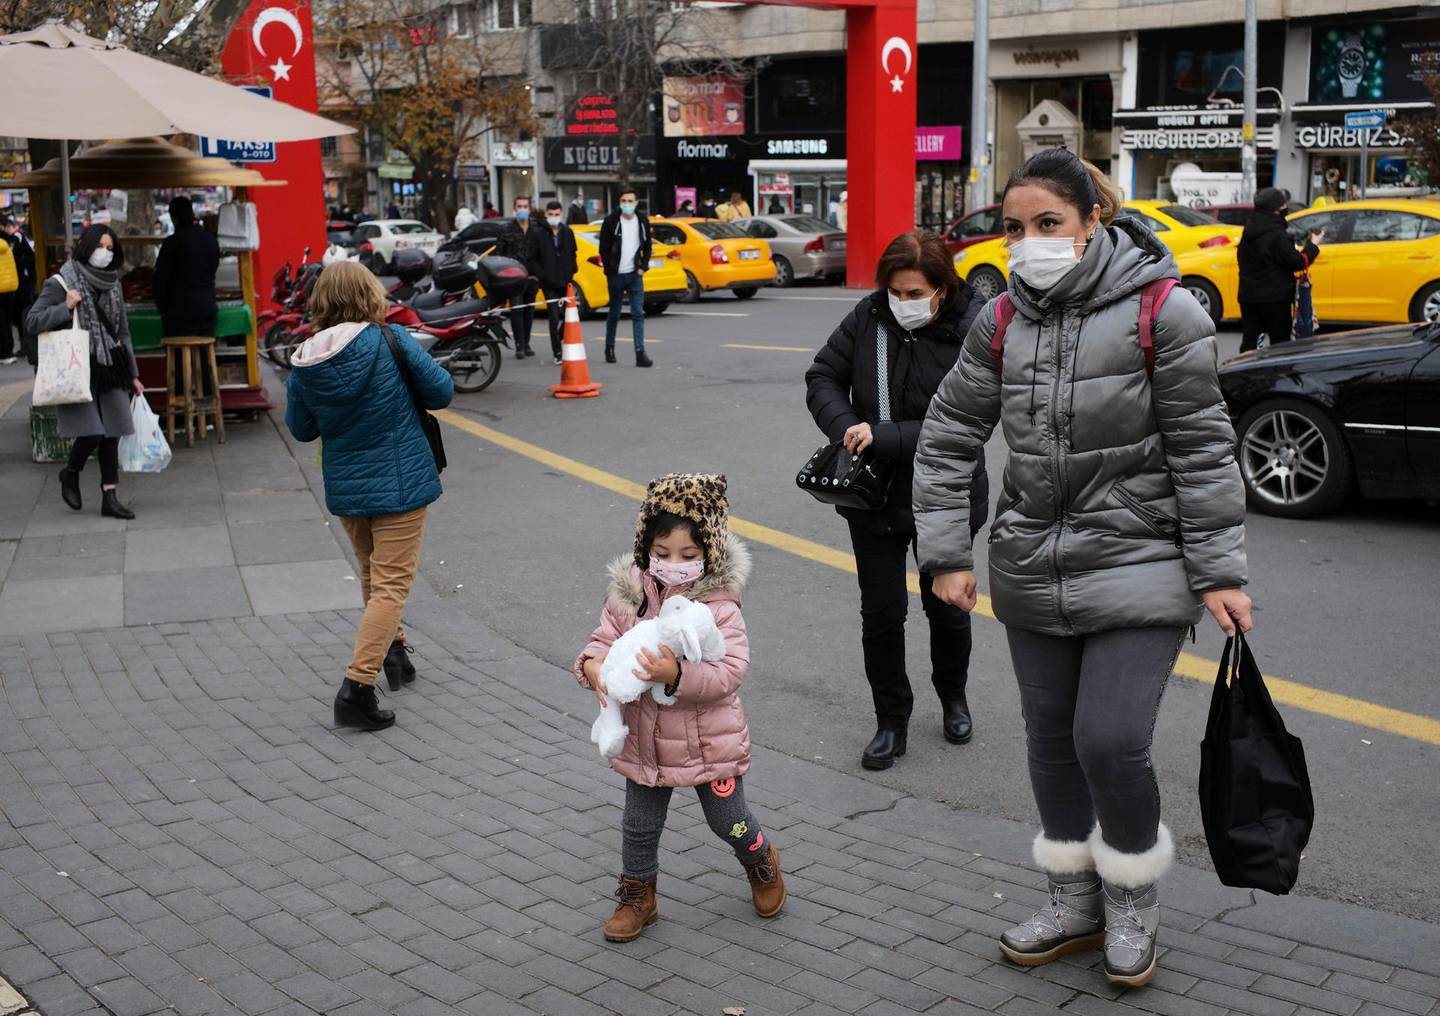 People wearing face masks to protect against coronavirus, walk along a street hours before a two-day weekend curfew, in Ankara, Turkey, Friday, Dec. 18, 2020. Turkey's daily COVID-19 death toll hit a record high on Wednesday, Dec. 16, 2020, with the government announcing close to 30,000 new confirmed infections in the last 24 hours, pushing the total of confirmed cases since the outbreak began in March to nearly 2 million. (AP Photo/Burhan Ozbilici)